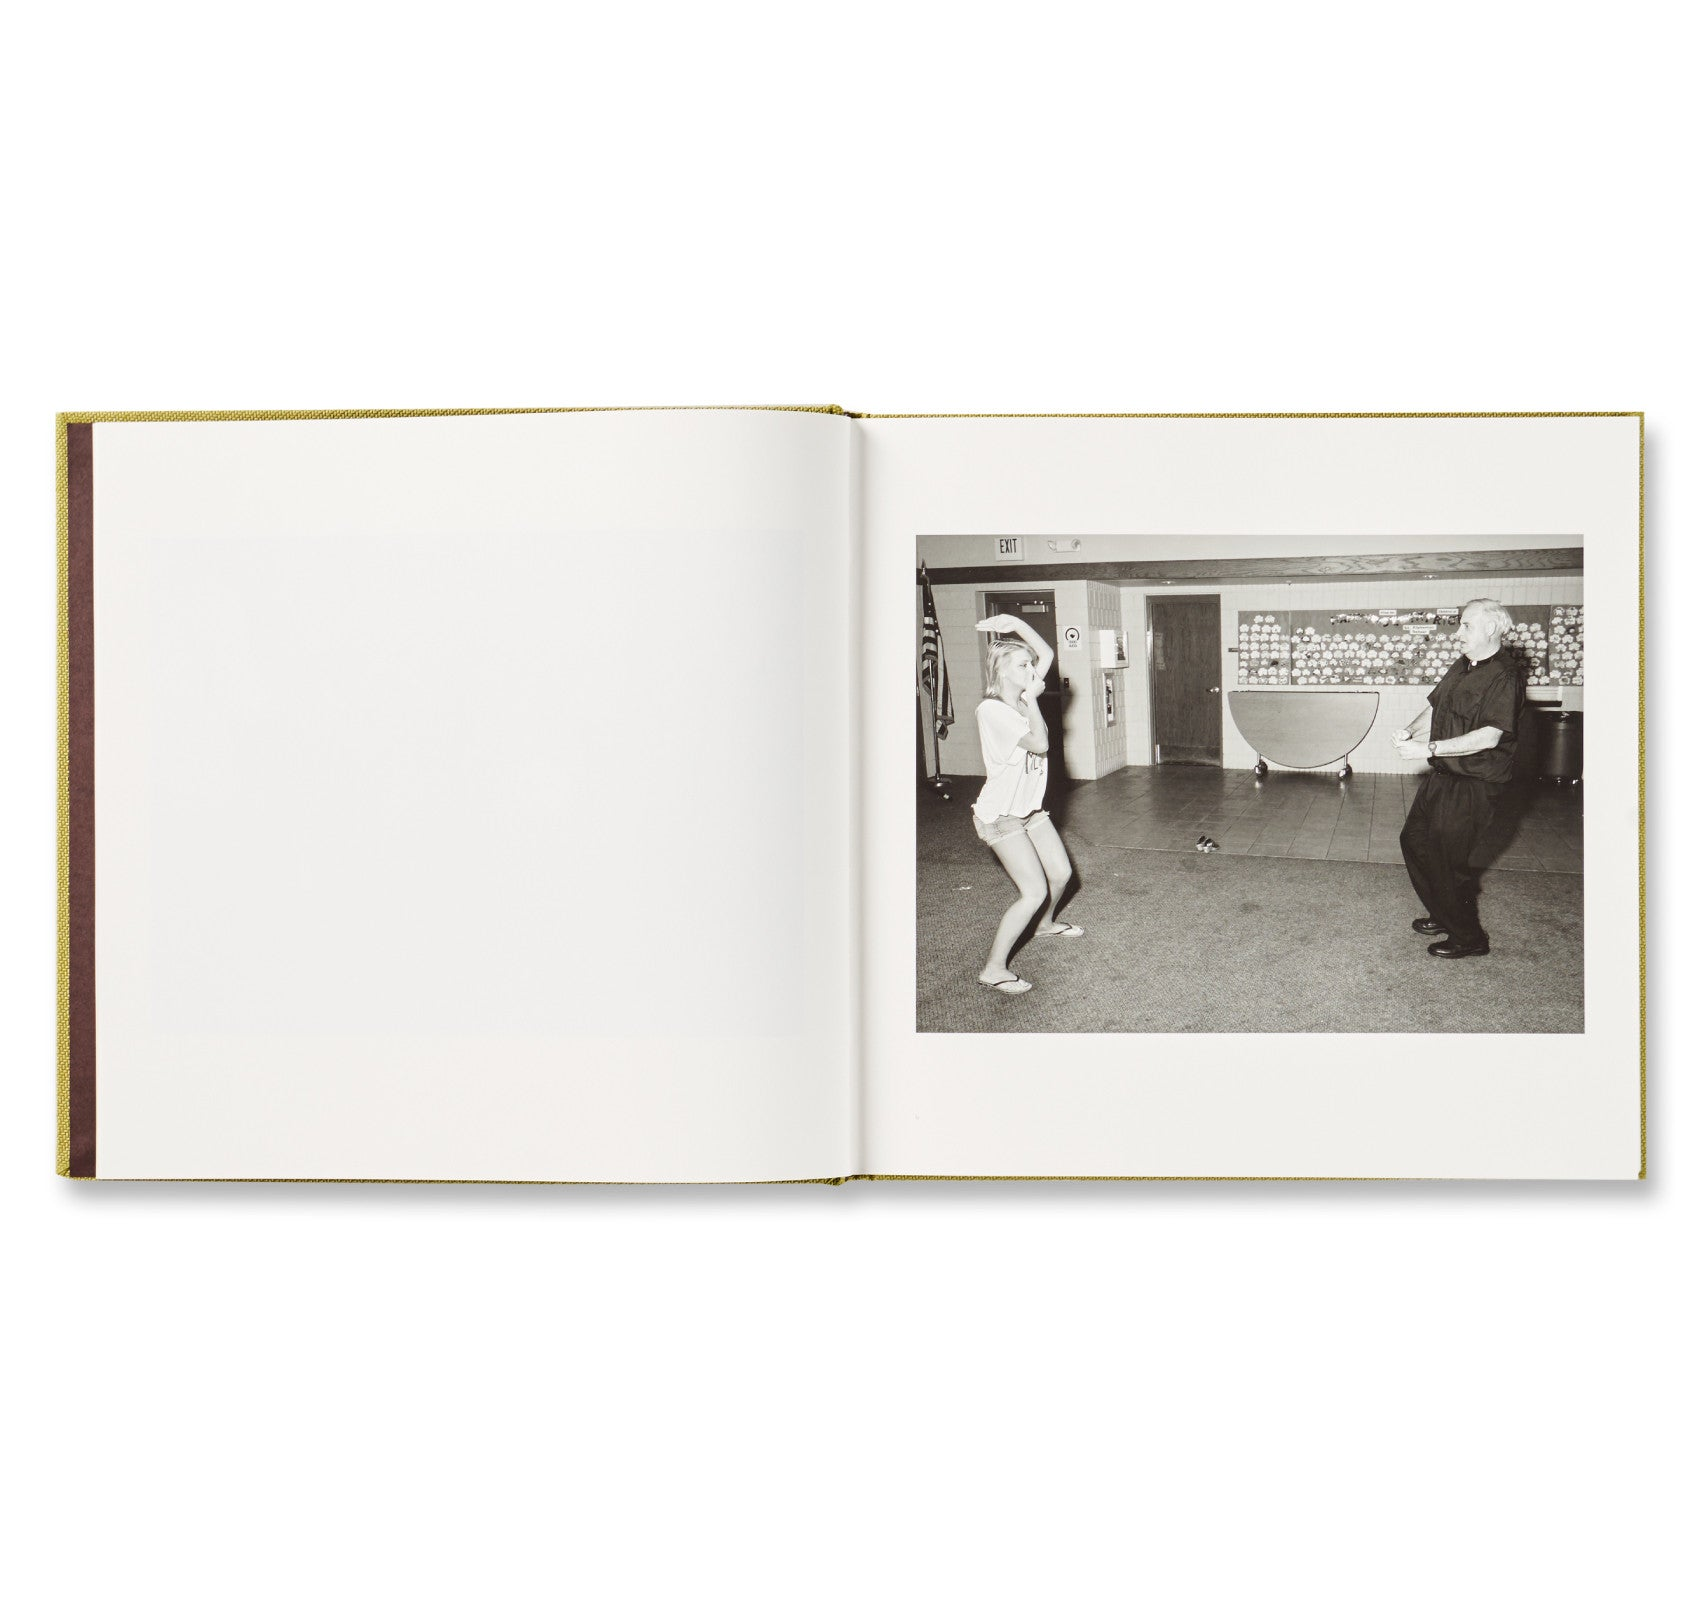 SONGBOOK by Alec Soth [FIRST EDITION, FIRST PRINTING]